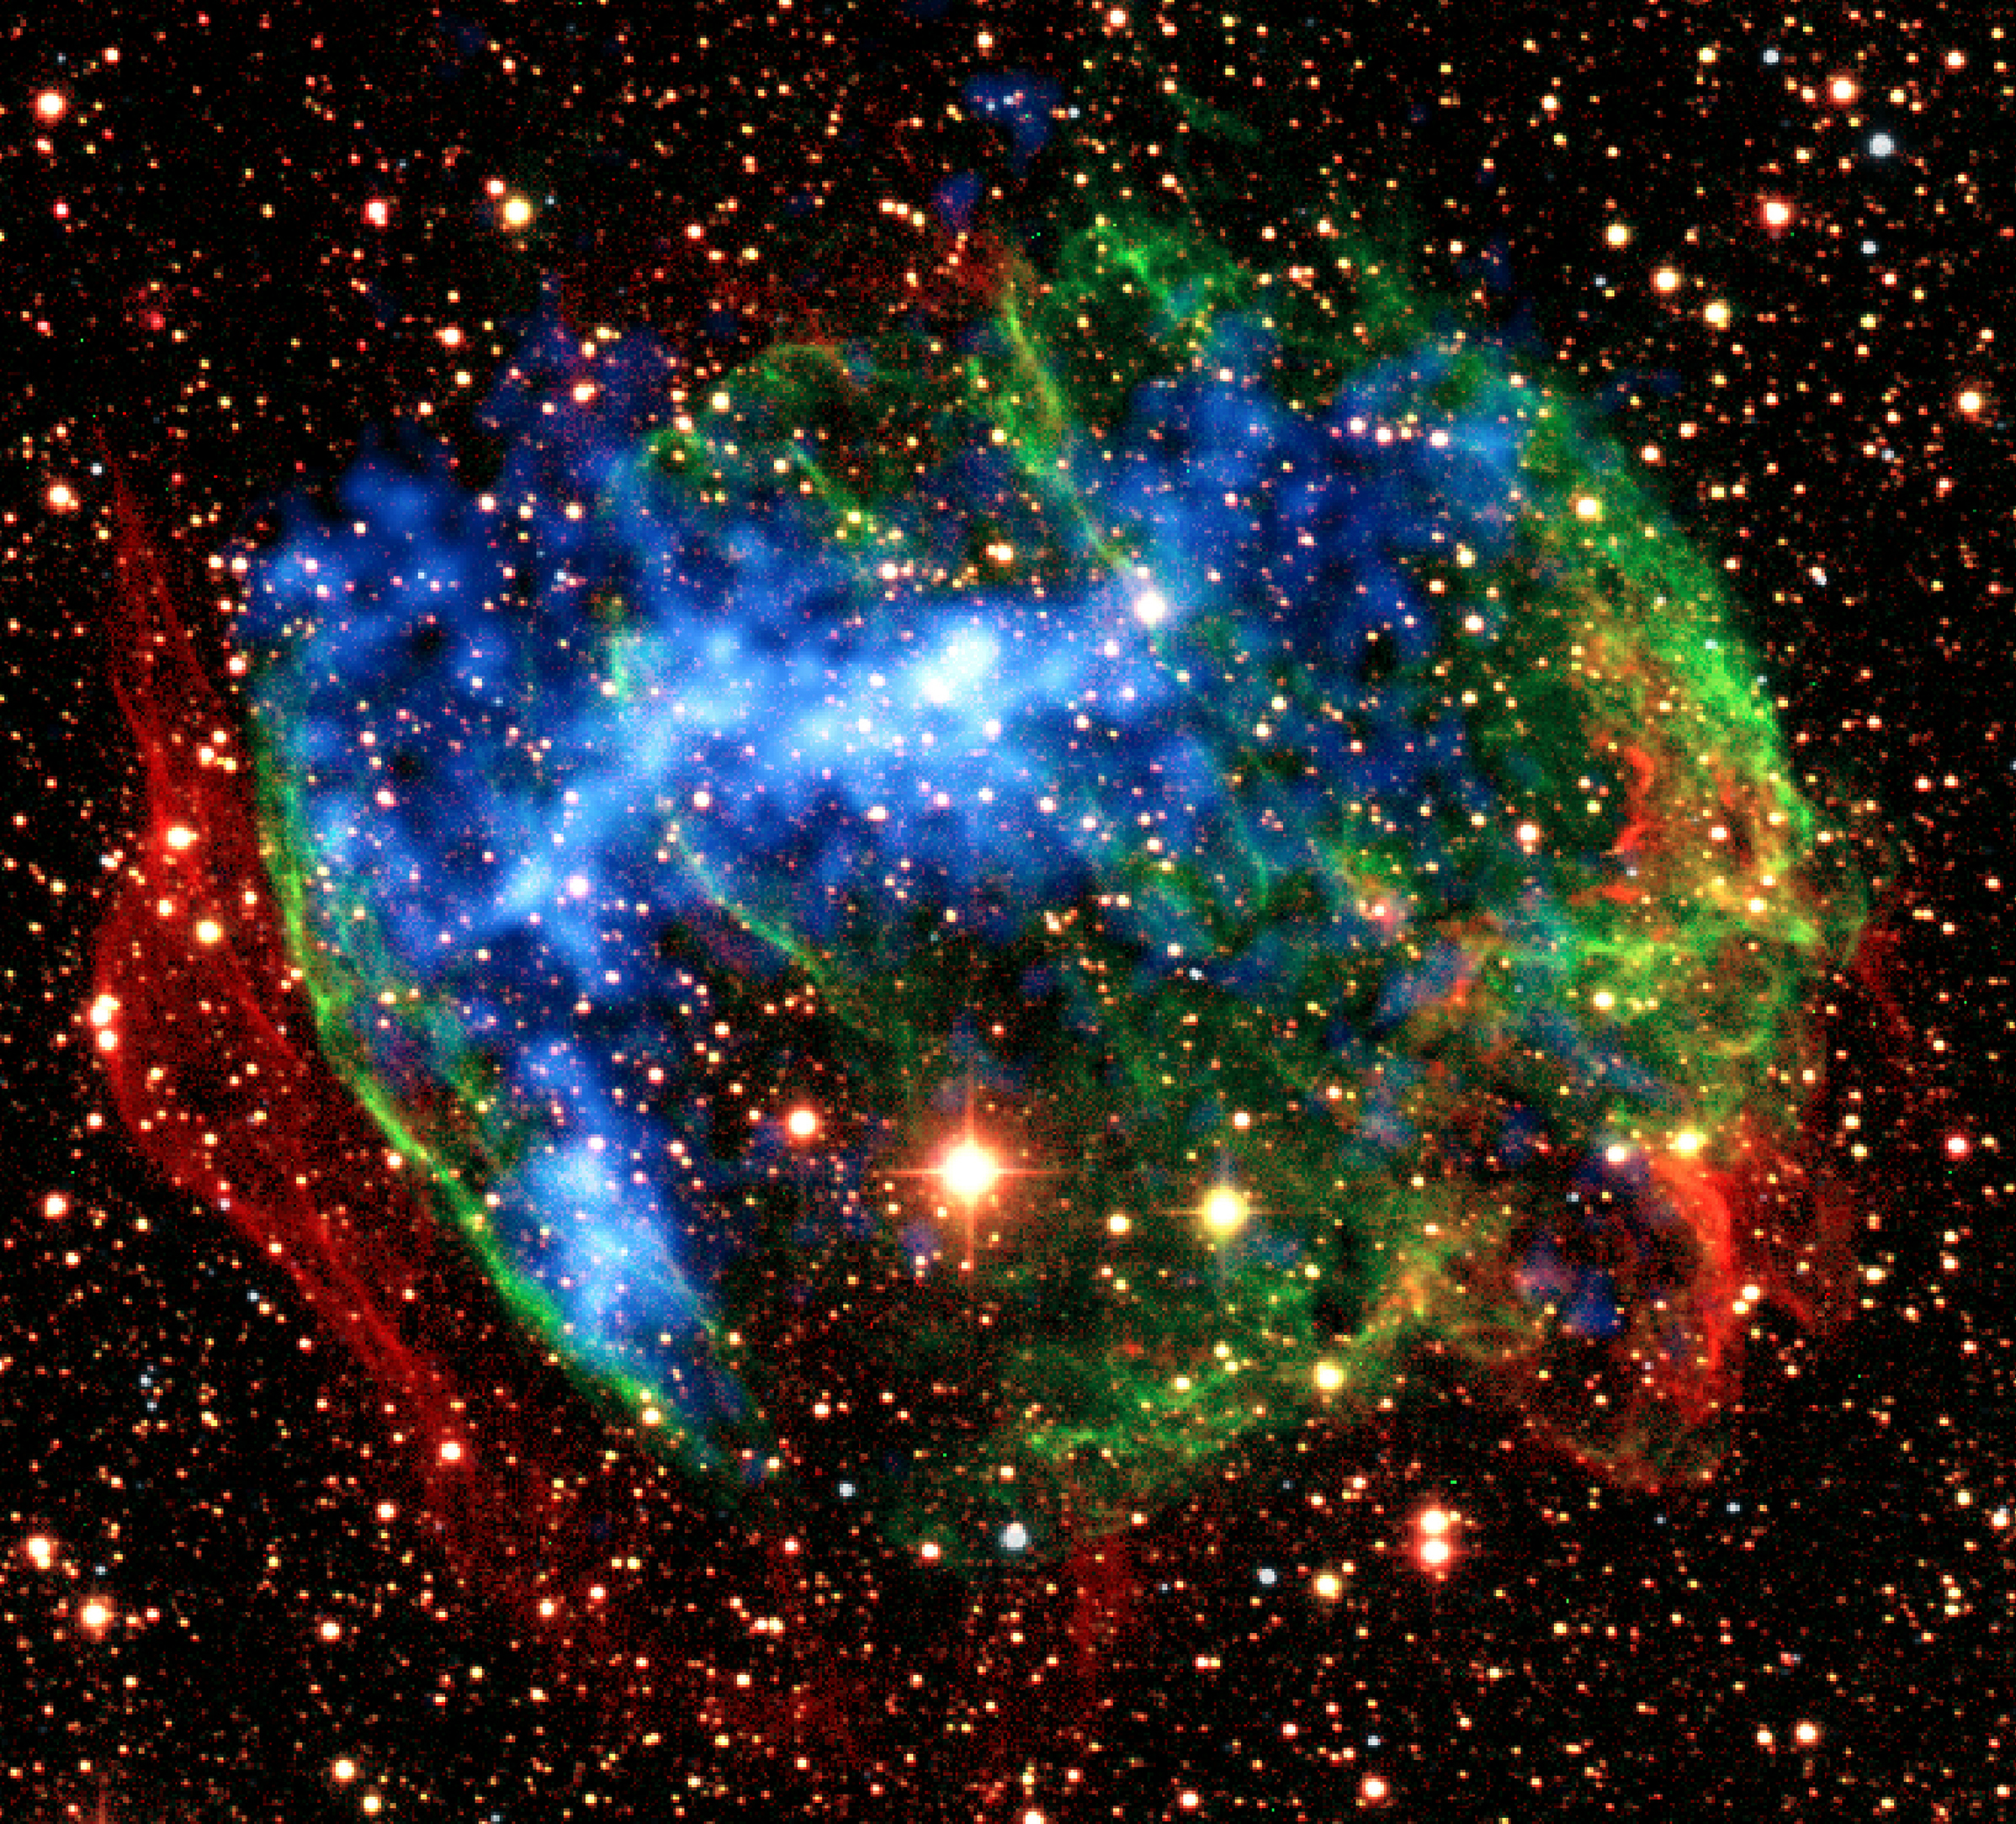 This image provided by NASA Wednesday Dec. 30, 2009 shows a view combining infrared images from the ground (red, green) with X-ray data from NASA's Chandra X-Ray Observatory in the supernova remnant W49B. Studies of two supernova remnants using the Japan-U.S. Suzaku observatory have revealed never-before-seen embers of the high-temperature fireballs that immediately followed the explosions. Eve...